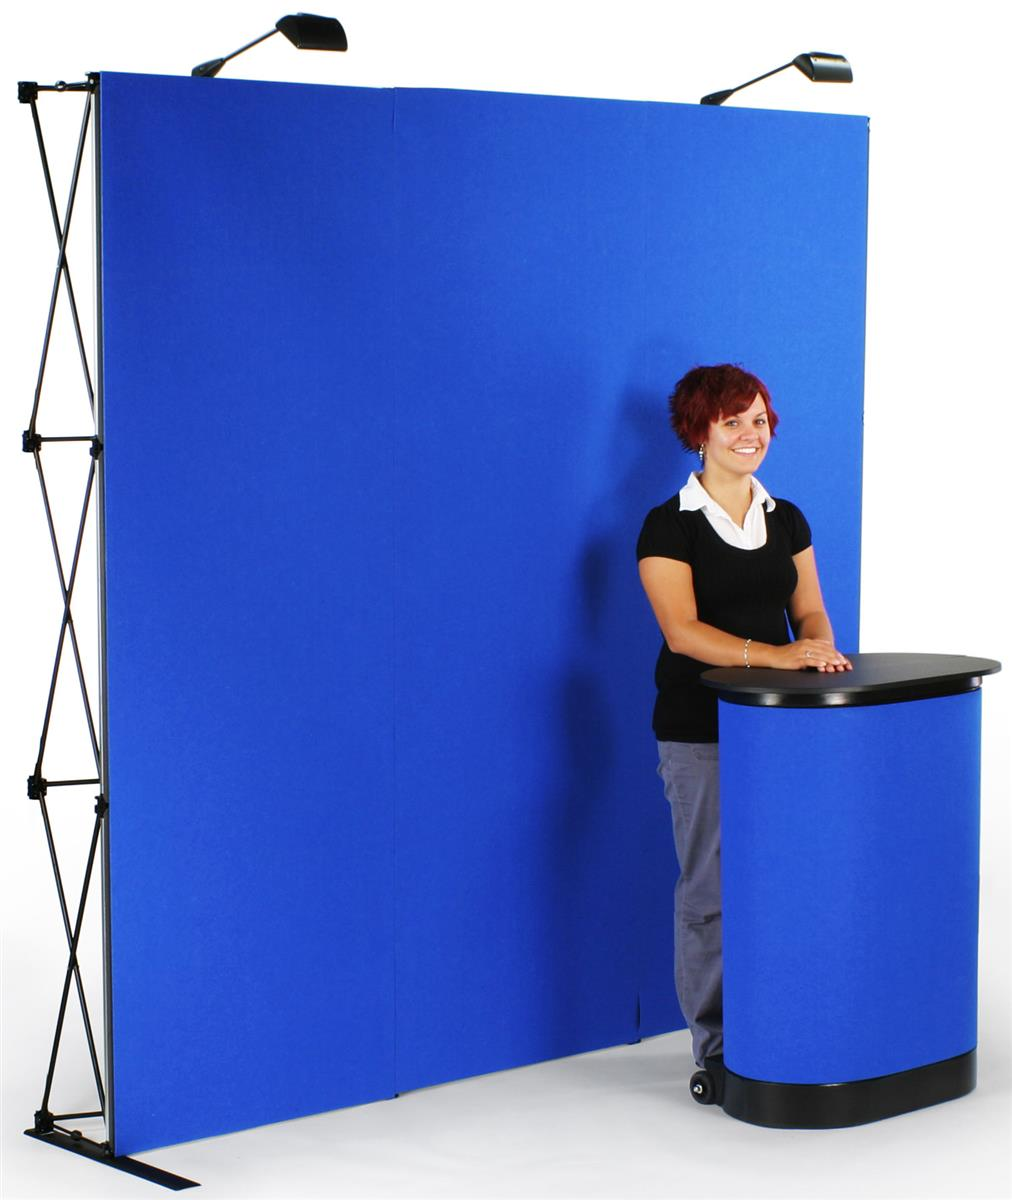 Trade Show Booth Loop : Pop up display exhibit booth with lights case